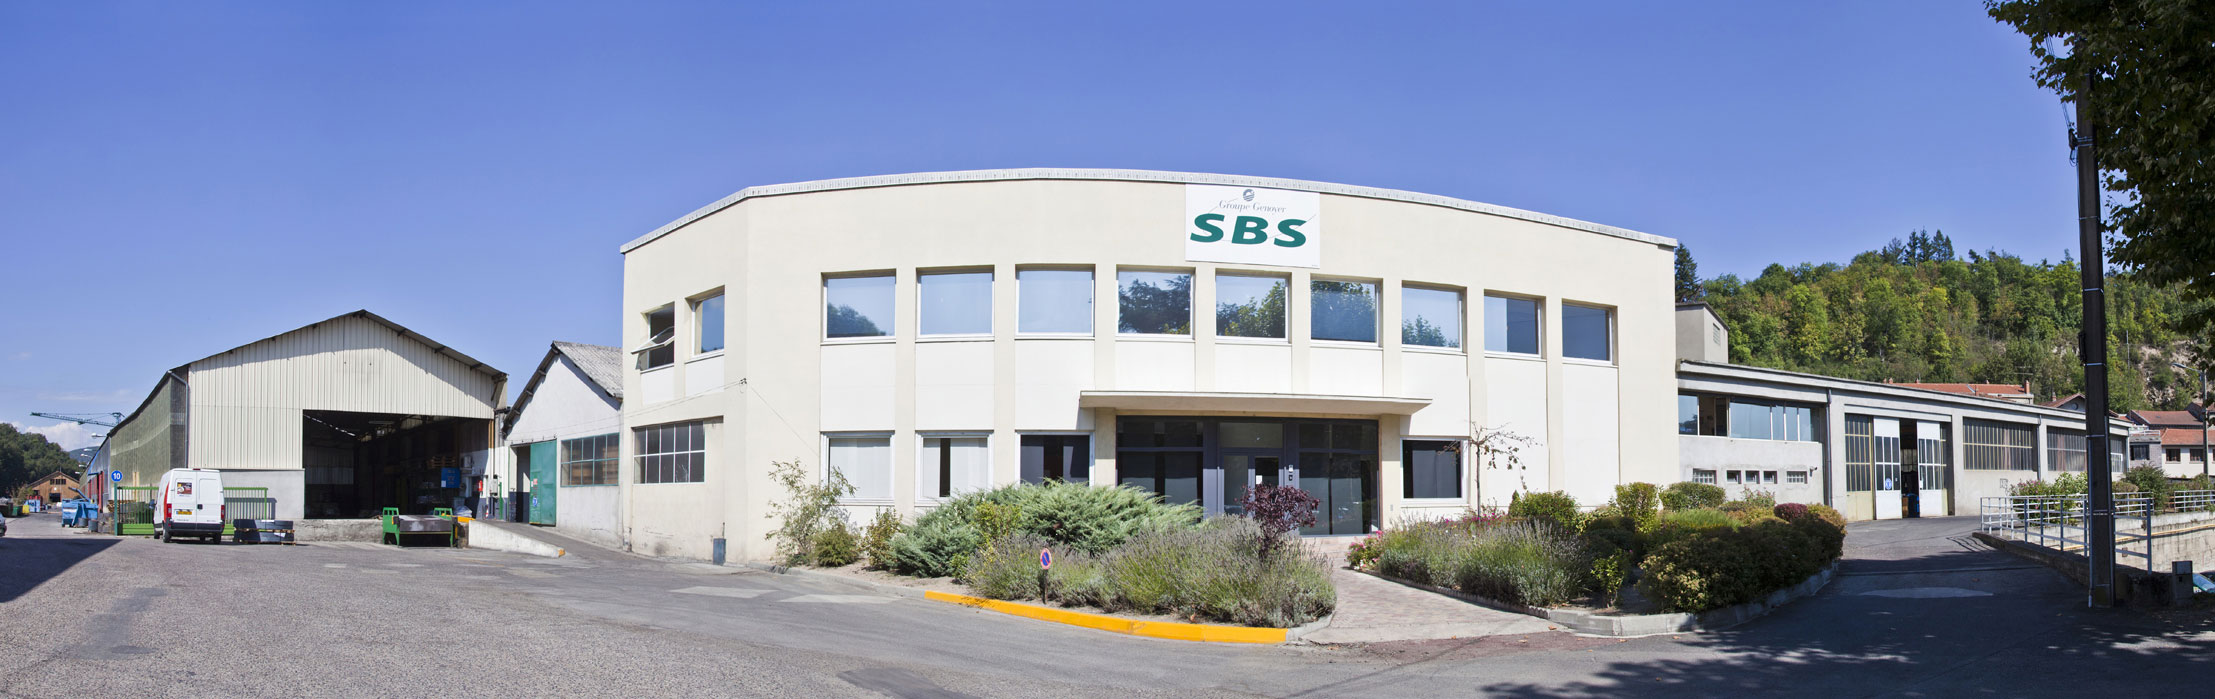 SBS-SOCIETE-PANORAMIQUE